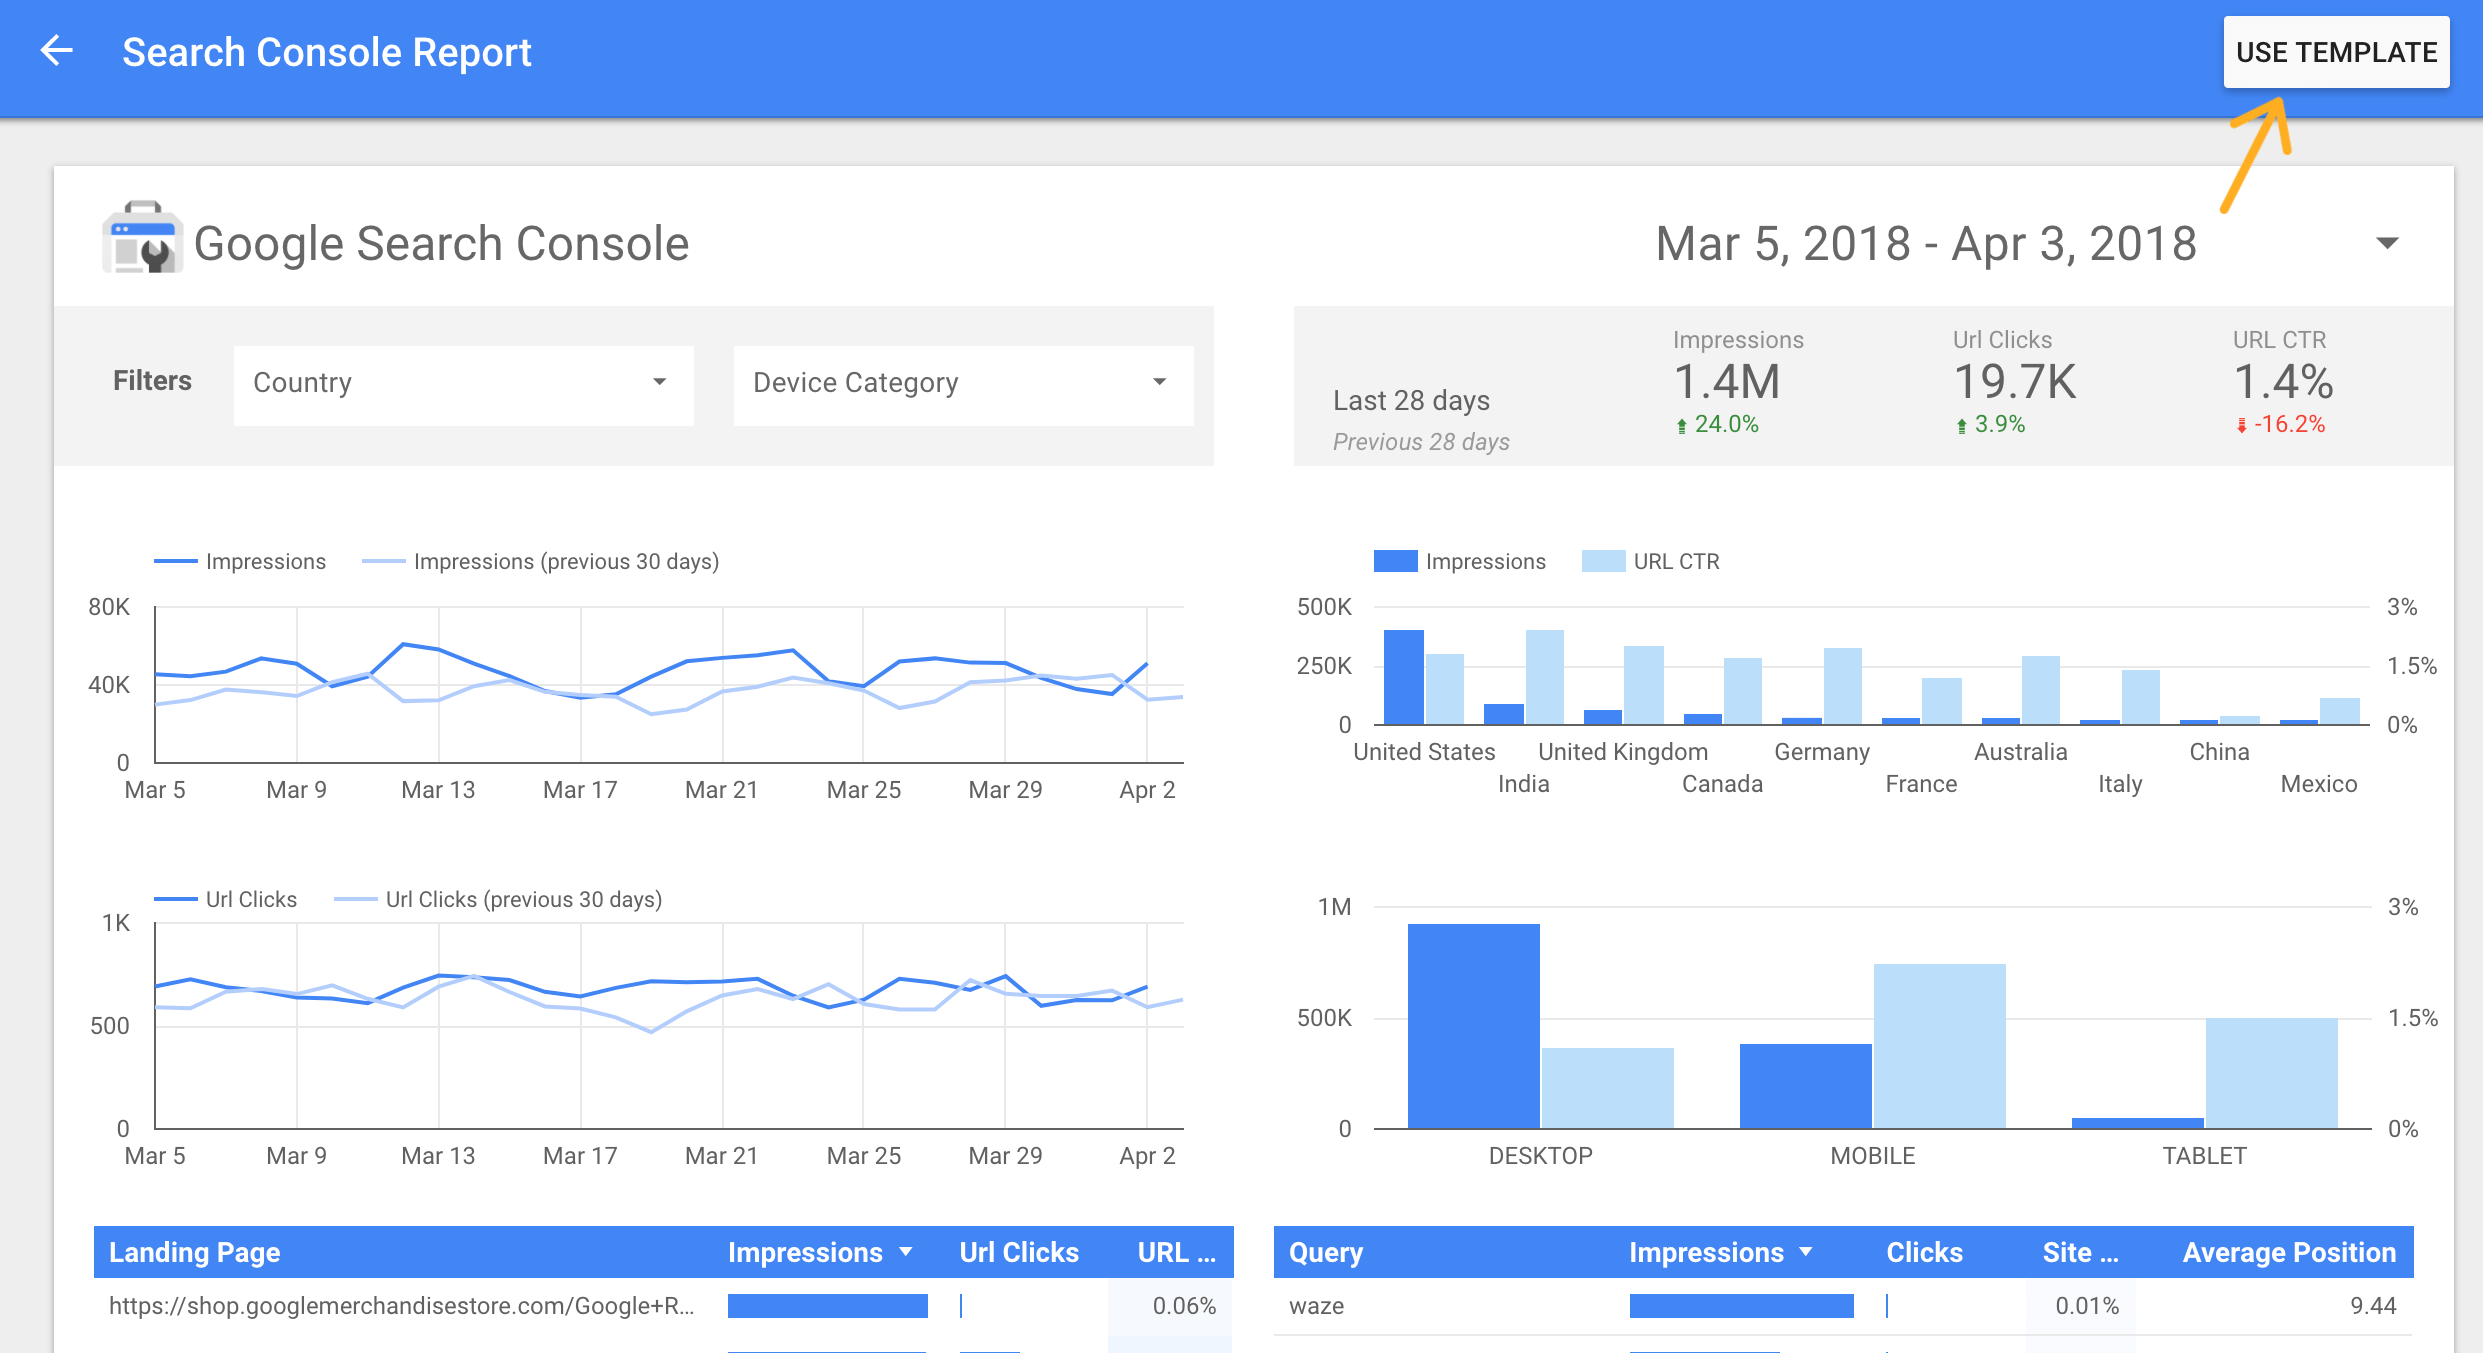 How to Build an SEO Dashboard with Google Analytics data in 2019